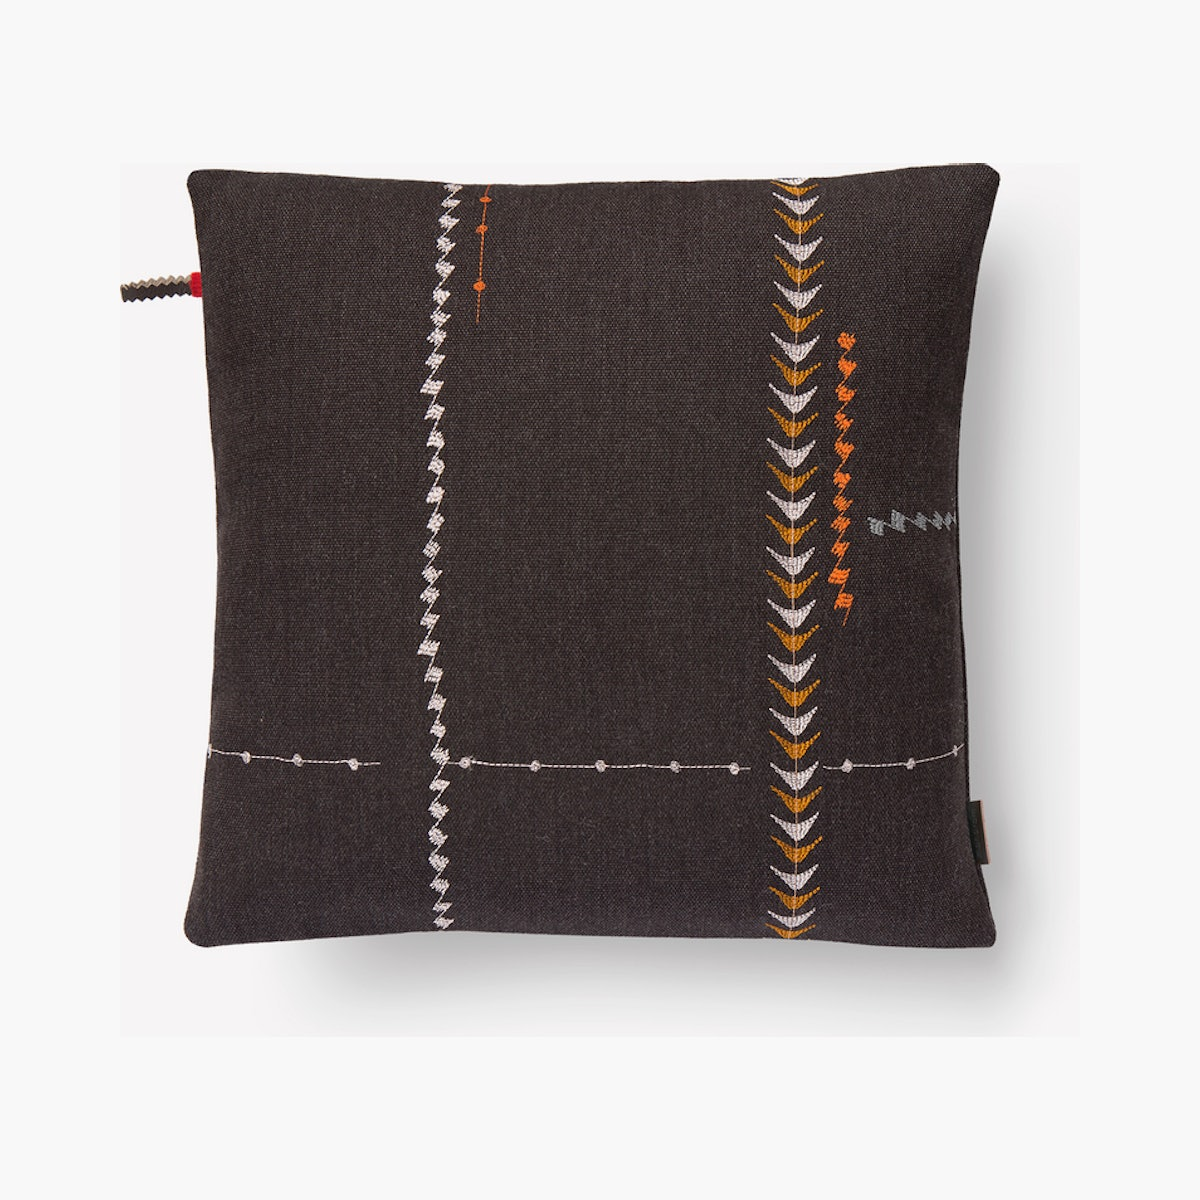 Maharam Pillow - Borders